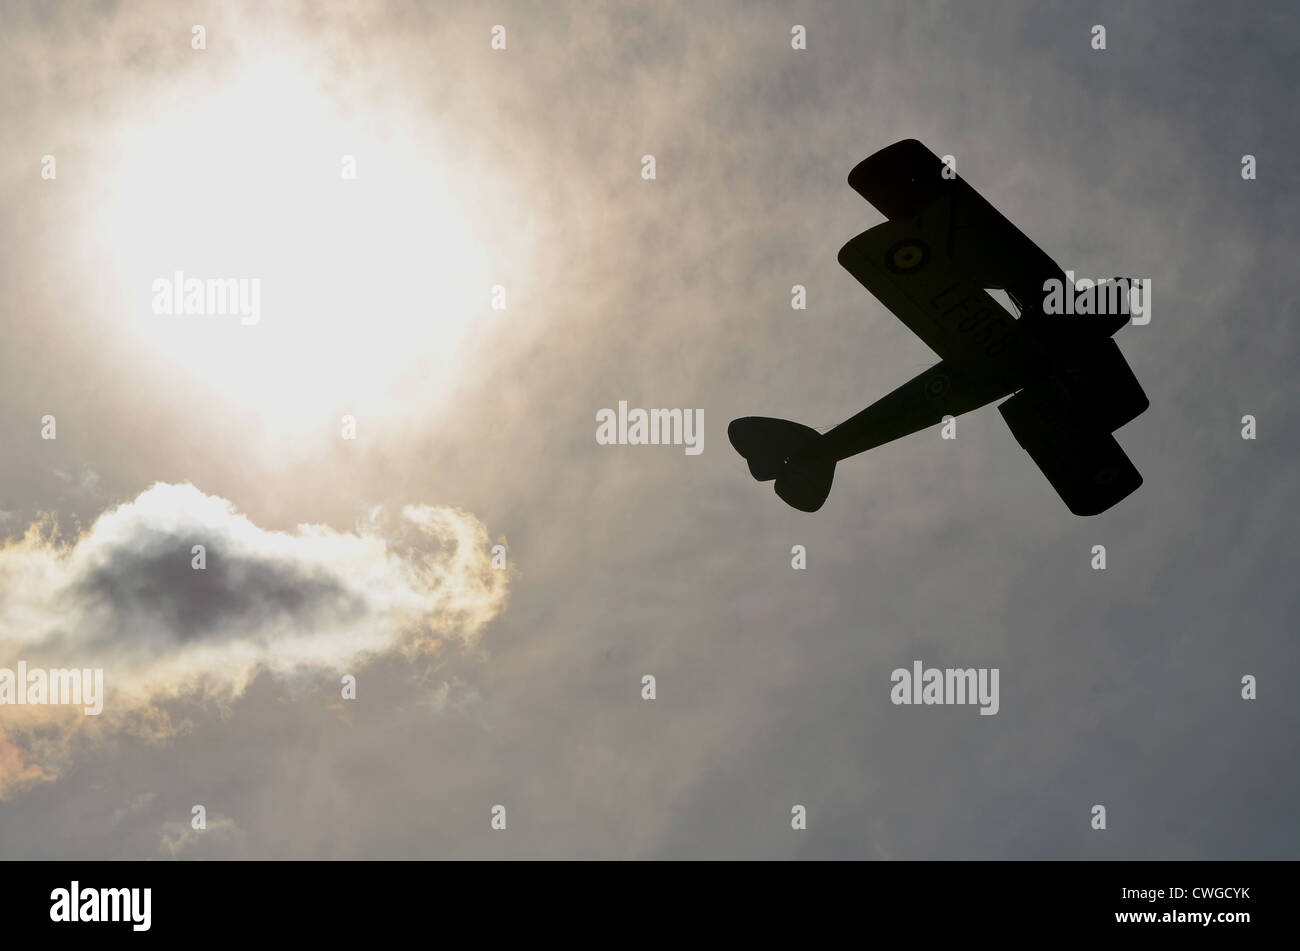 Silhouette of a bi-plane flying across the sky. Stock Photo